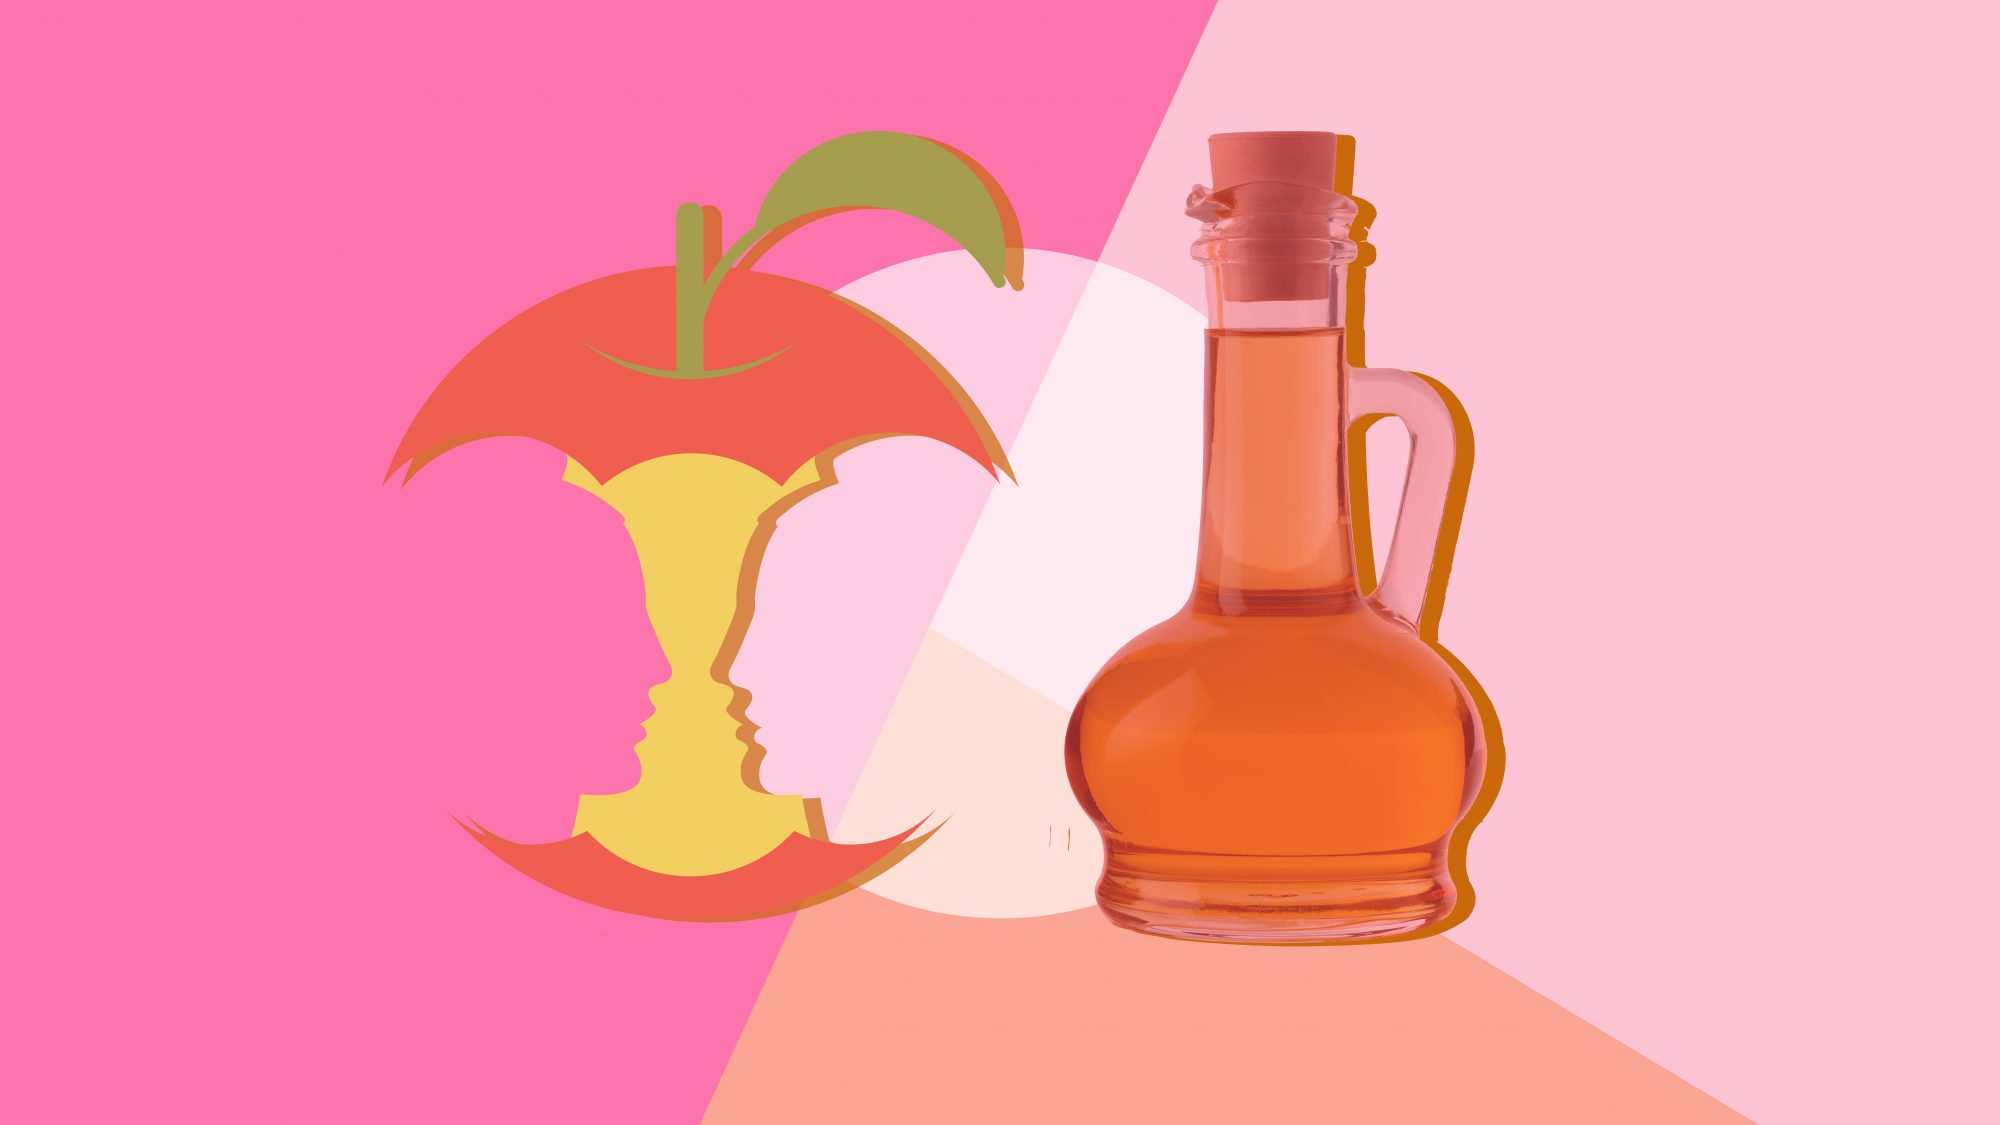 Apple Cider Vinegar Has Many Brilliant Uses, But Is It Safe for Your Skin?